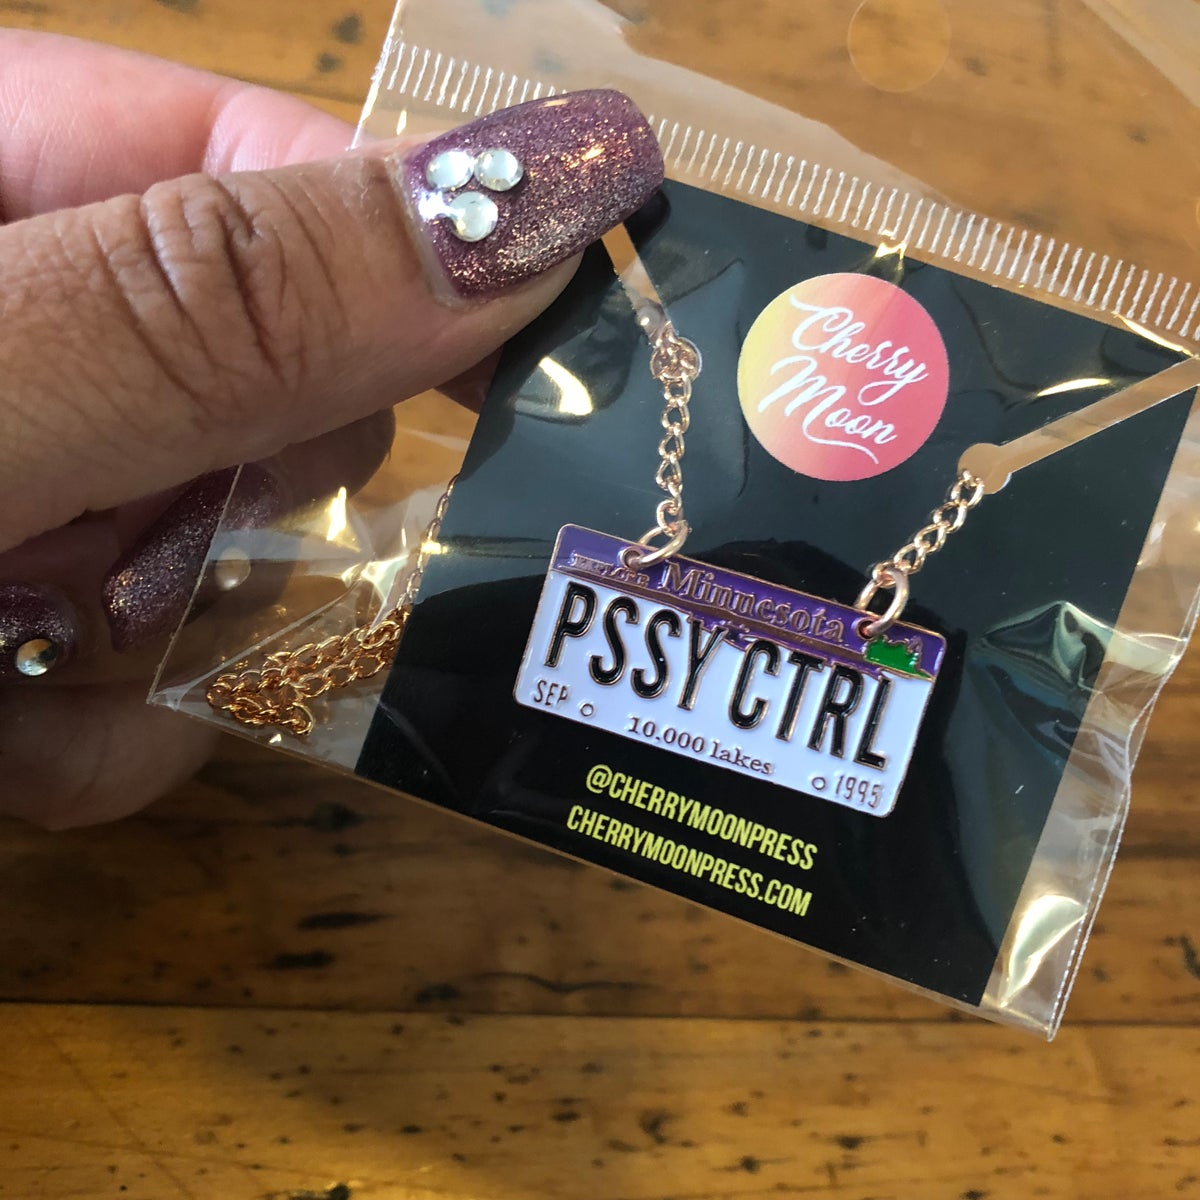 Image of PSSY CTRL necklace